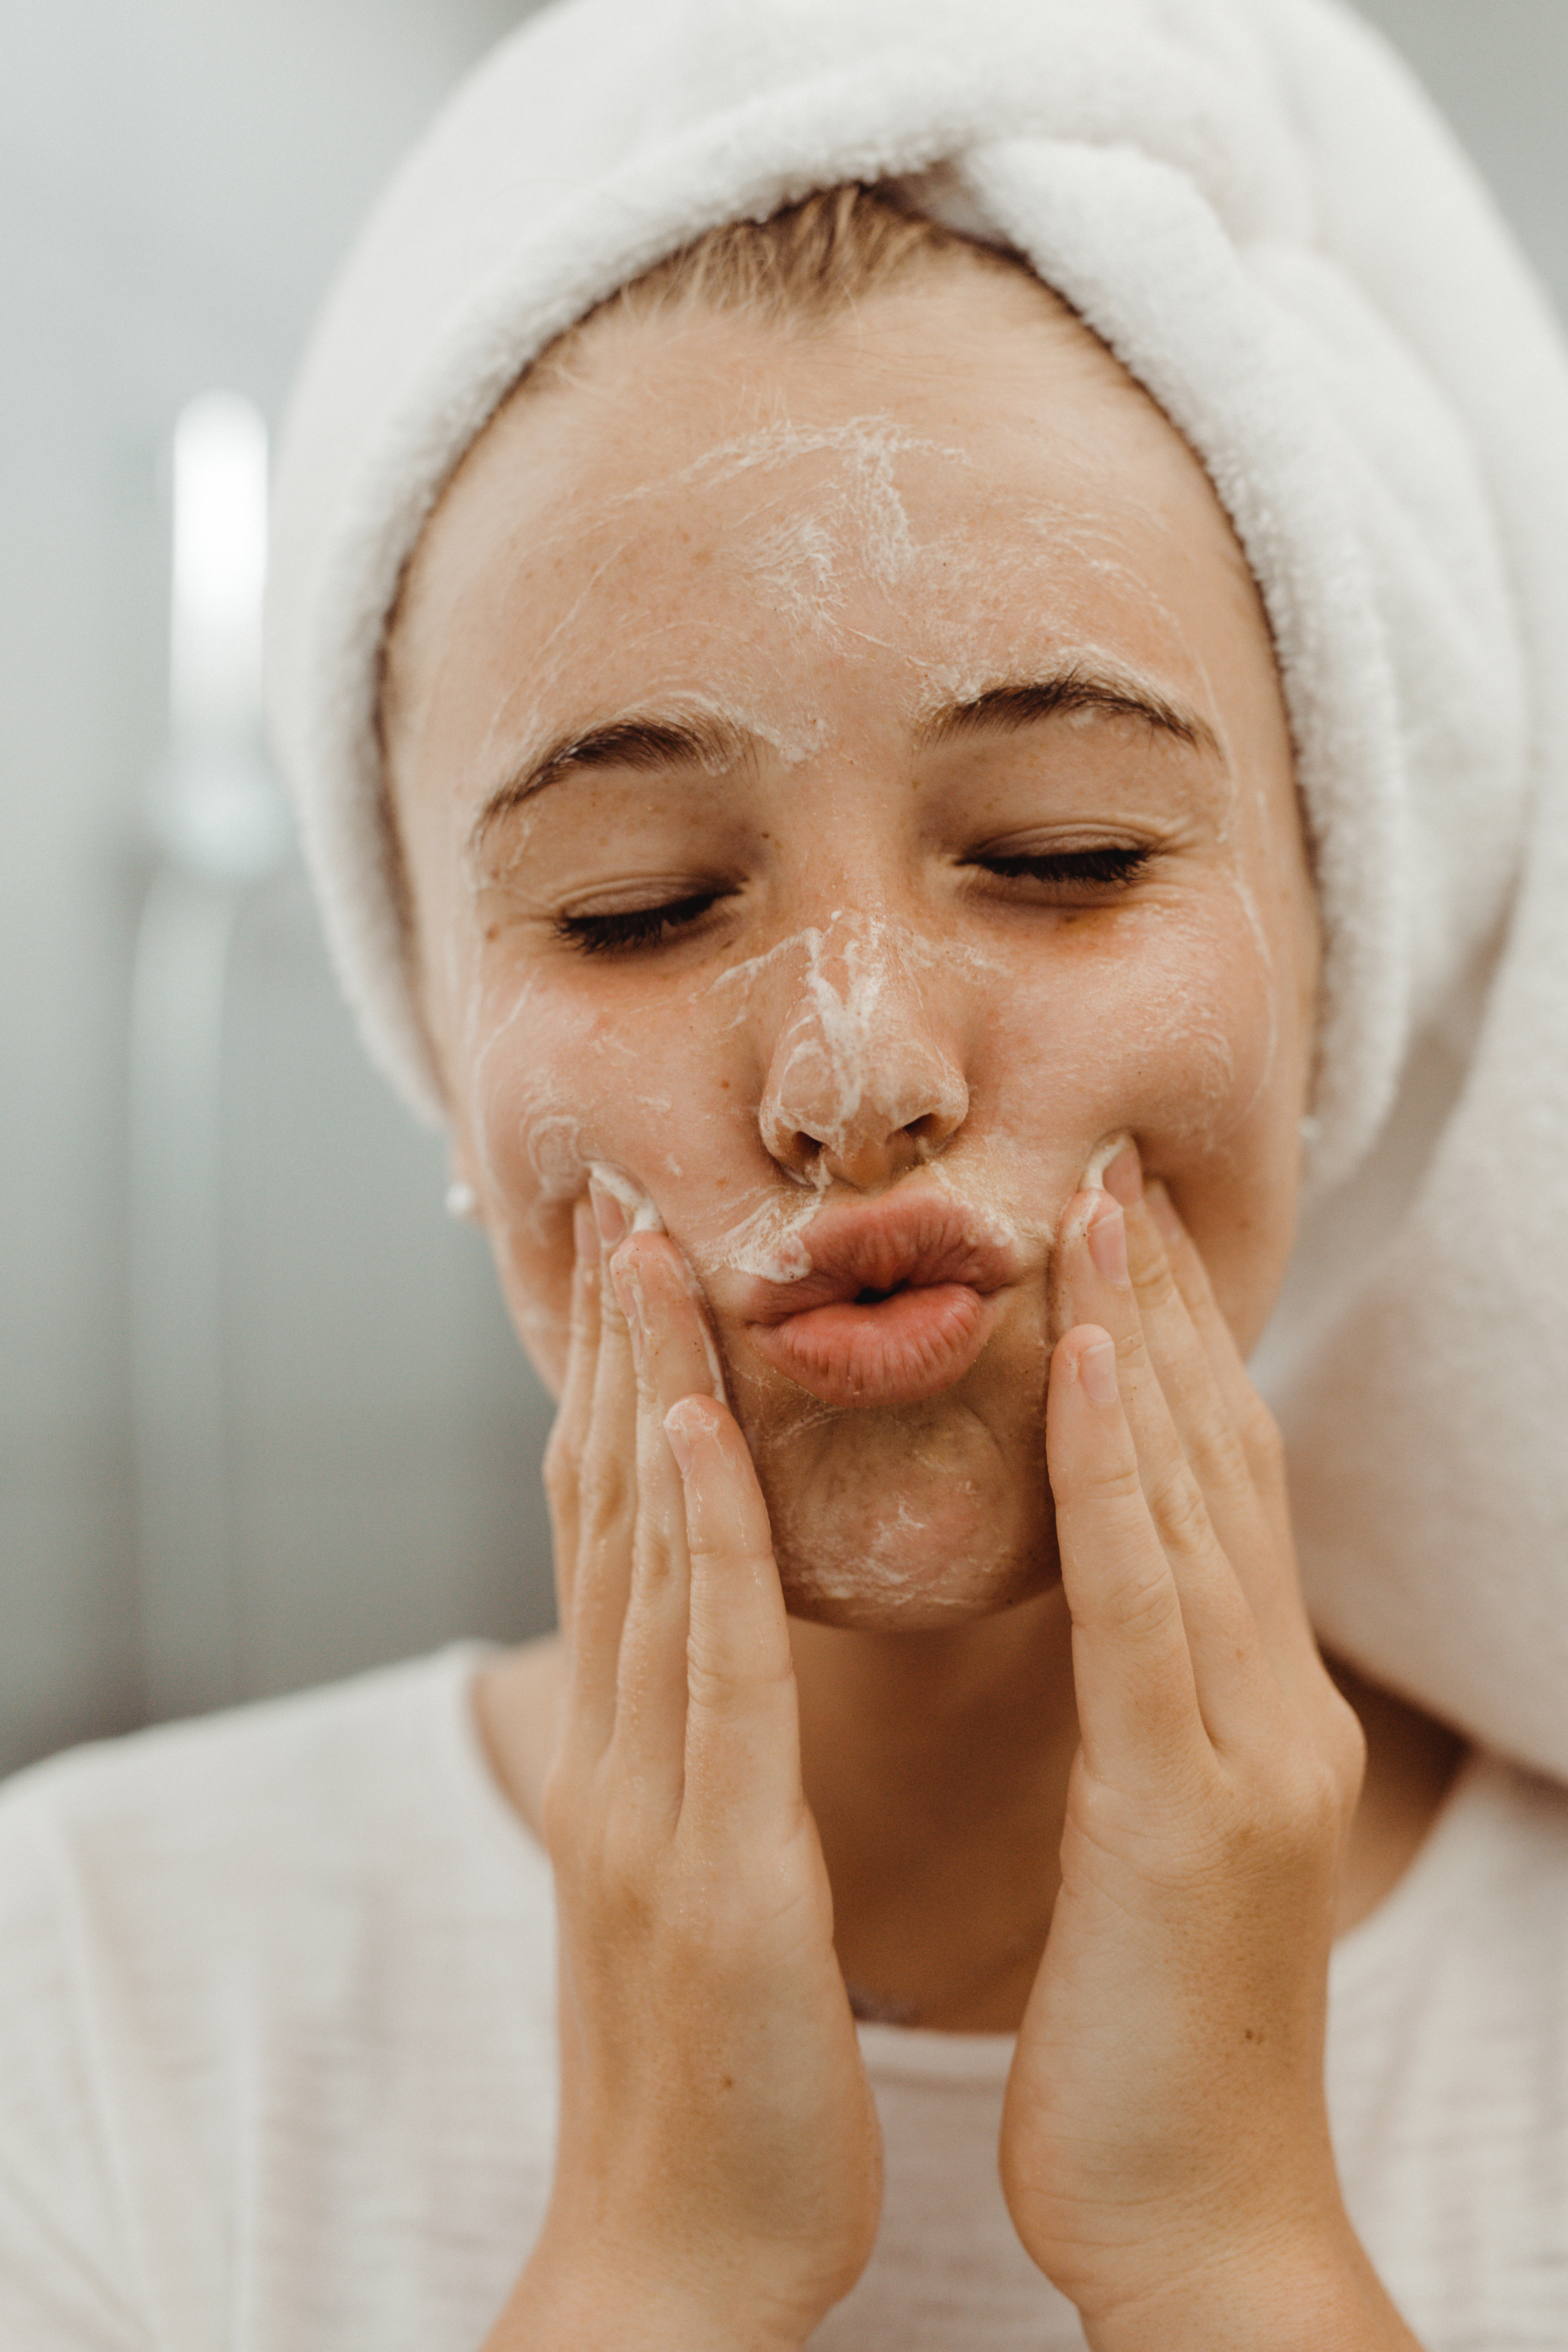 Double Cleansing 101